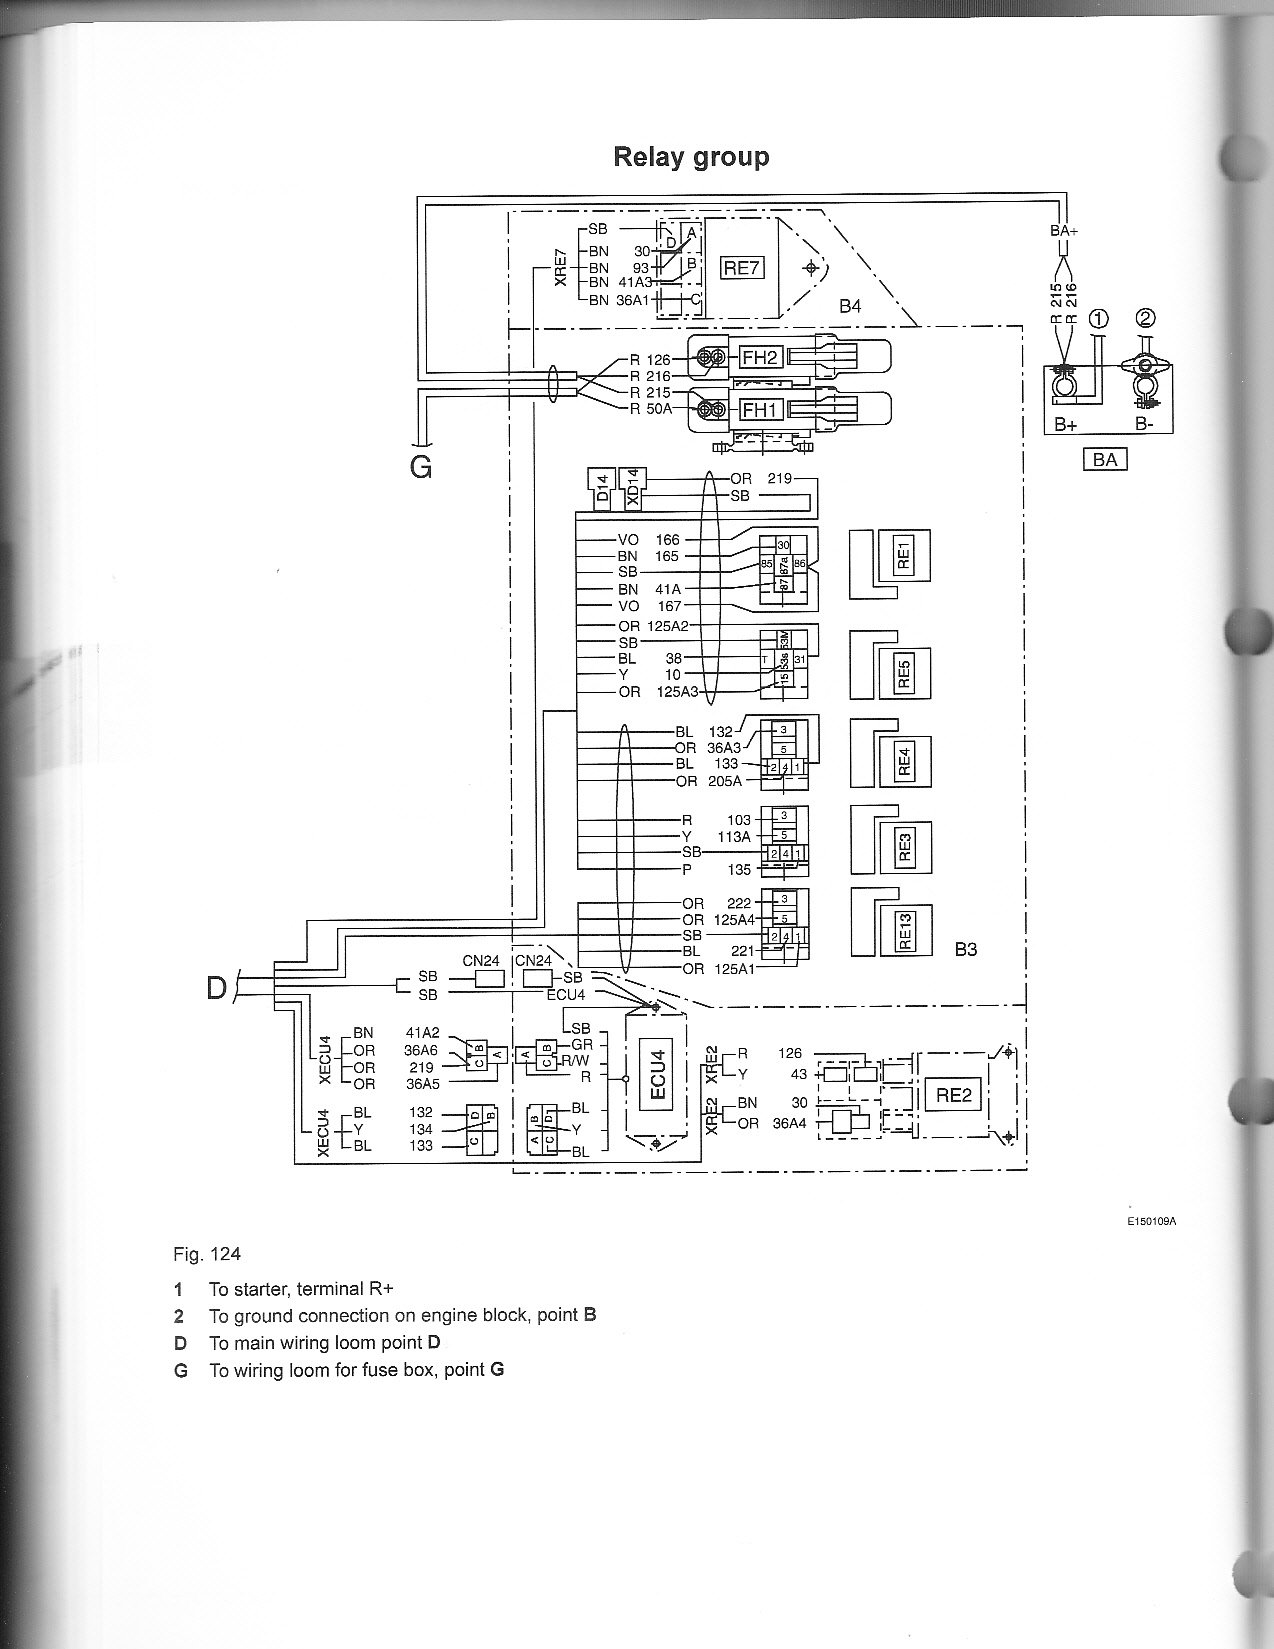 takeuchi excavator wiring diagram  takeuchi  free engine